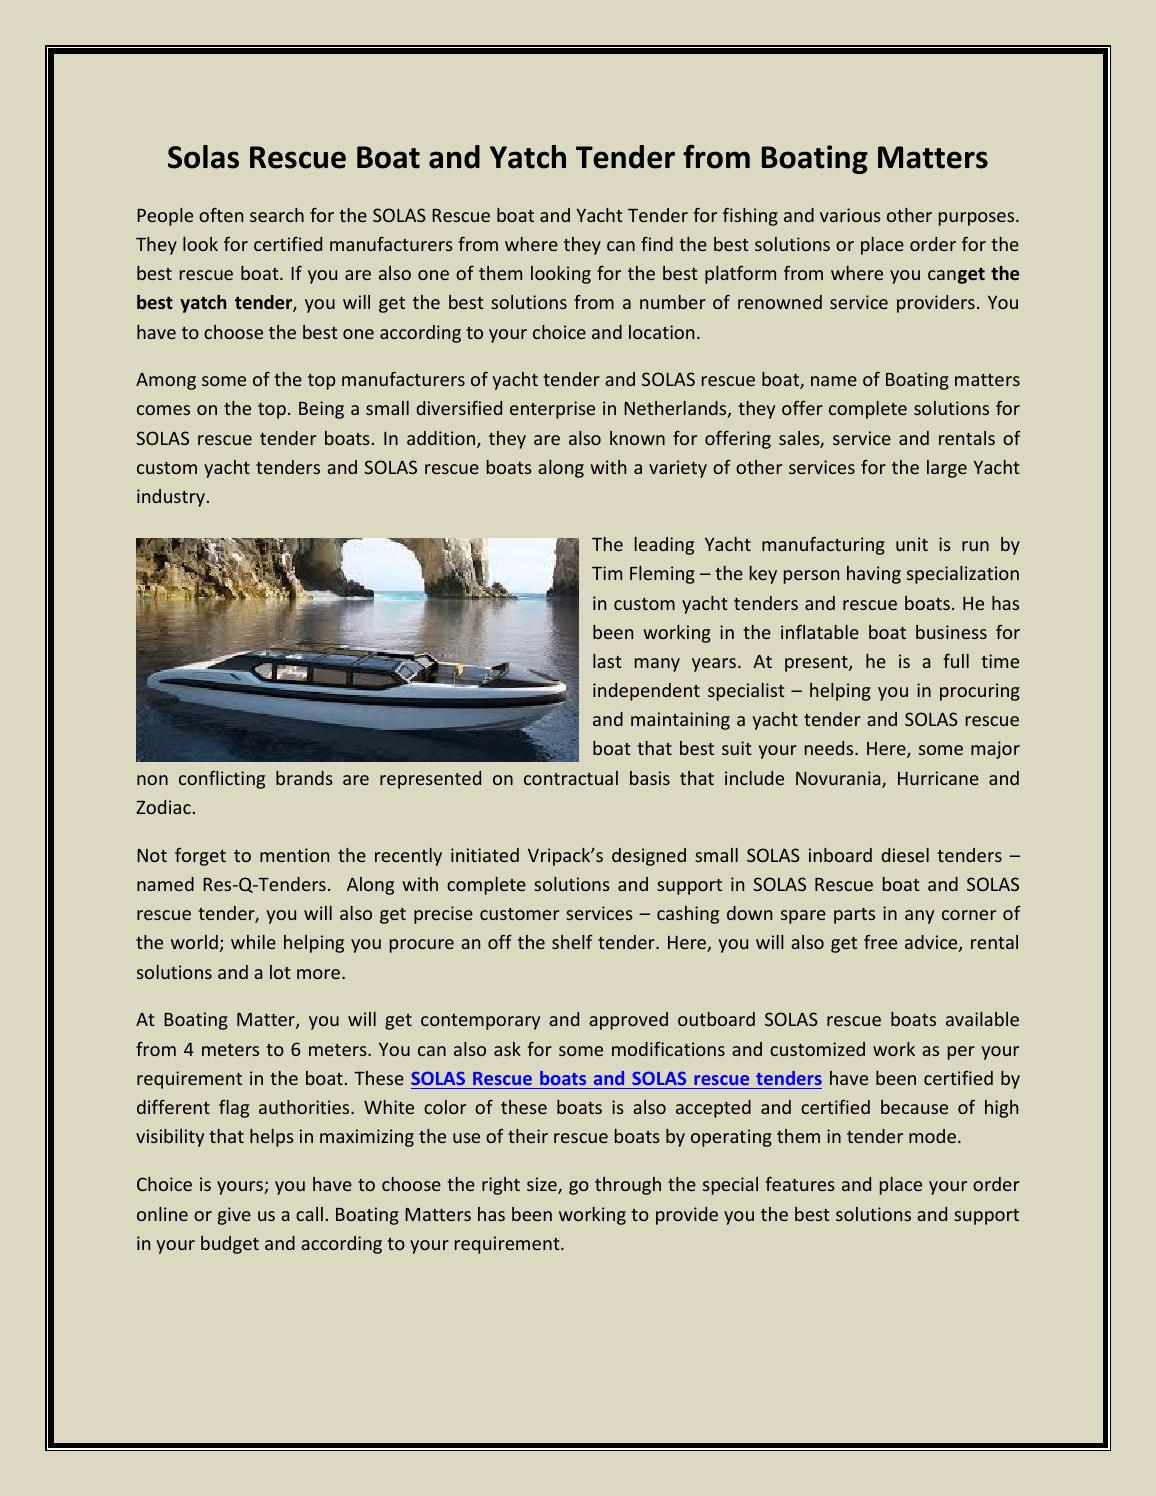 Solas Rescue Boat and Yatch Tender by Boating Matters - issuu